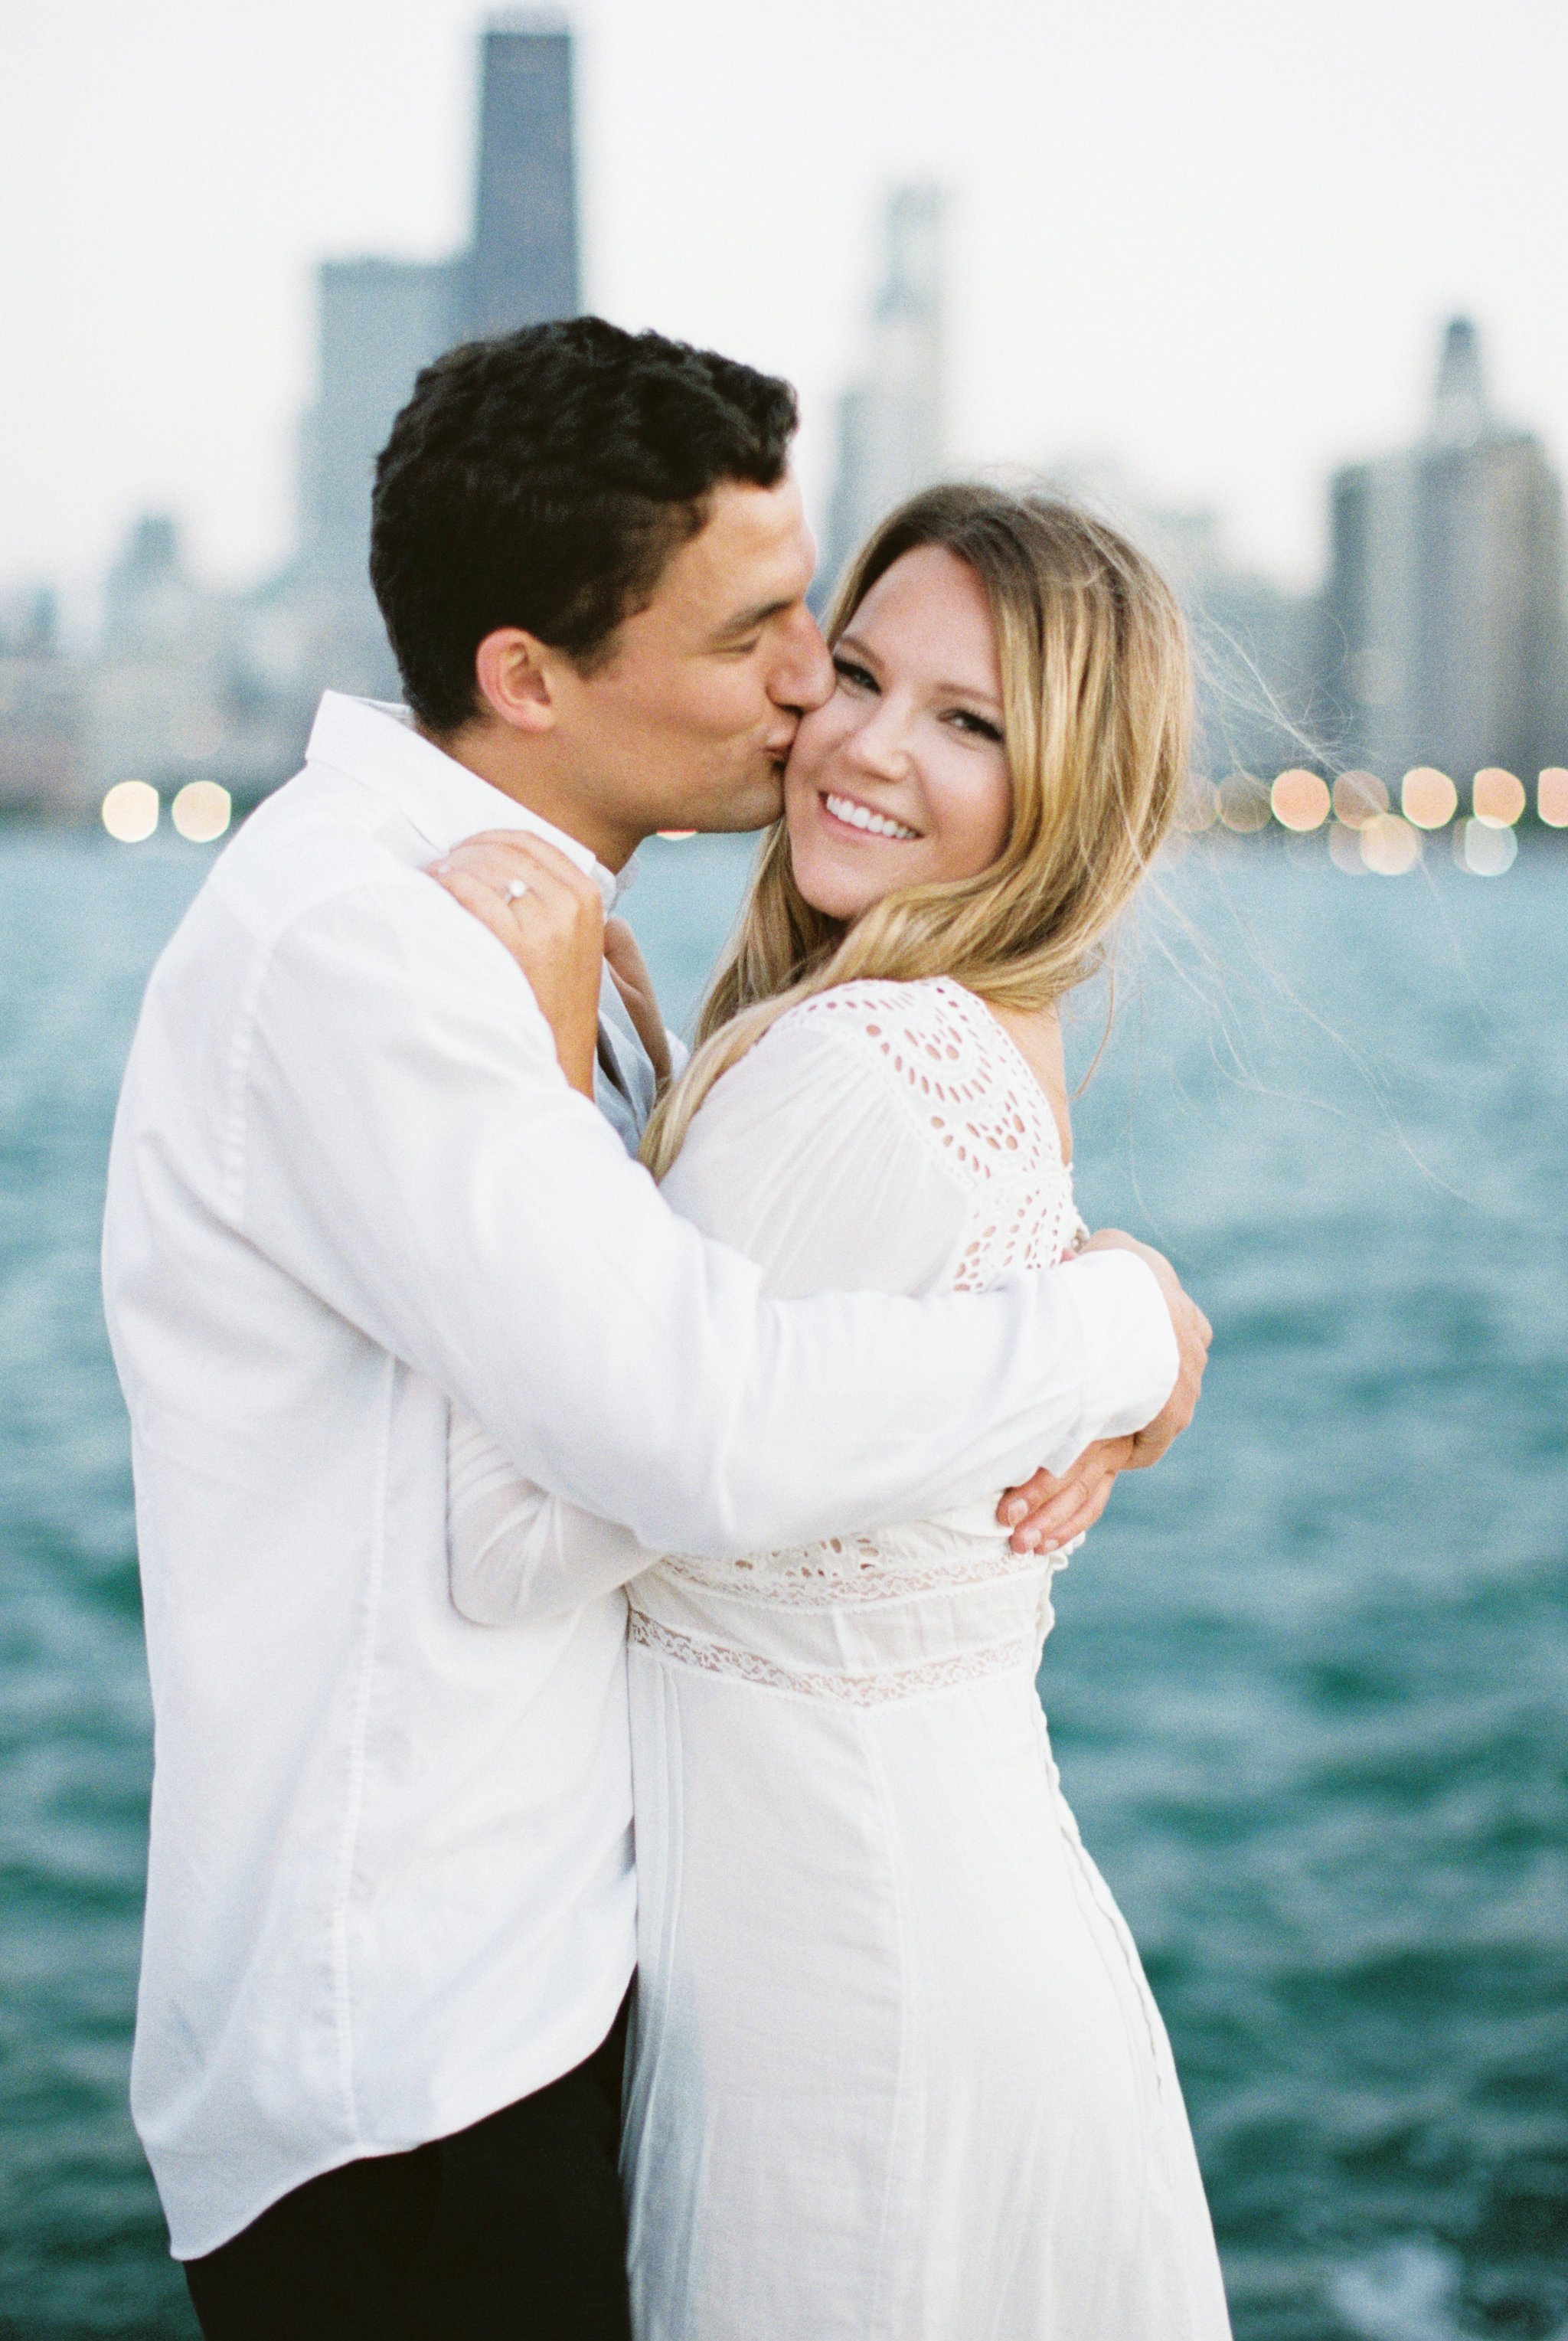 Romantic North Avenue Beach Chicago engagement session captured by Kendra Denault Photography. See more engagement photo ideas on CHItheeWED.com!